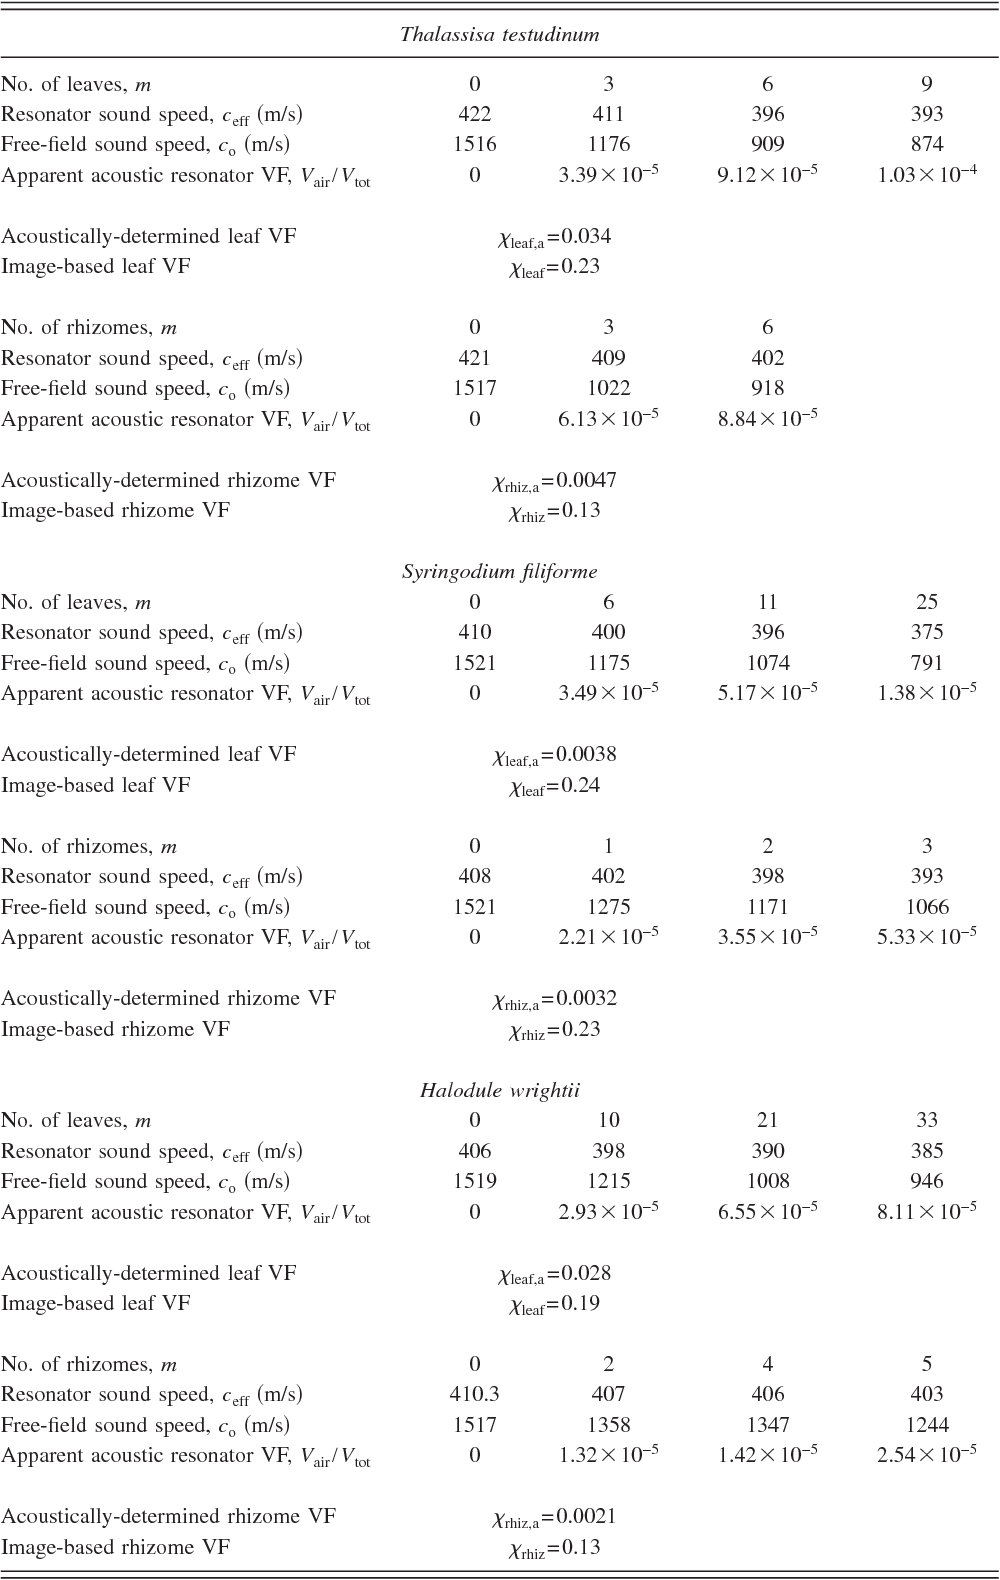 TABLE II. Measured resonator sound speeds, associ fractions are presented for Thalassia testudinum, Syri the acoustic- and image-based leaf and rhizome void